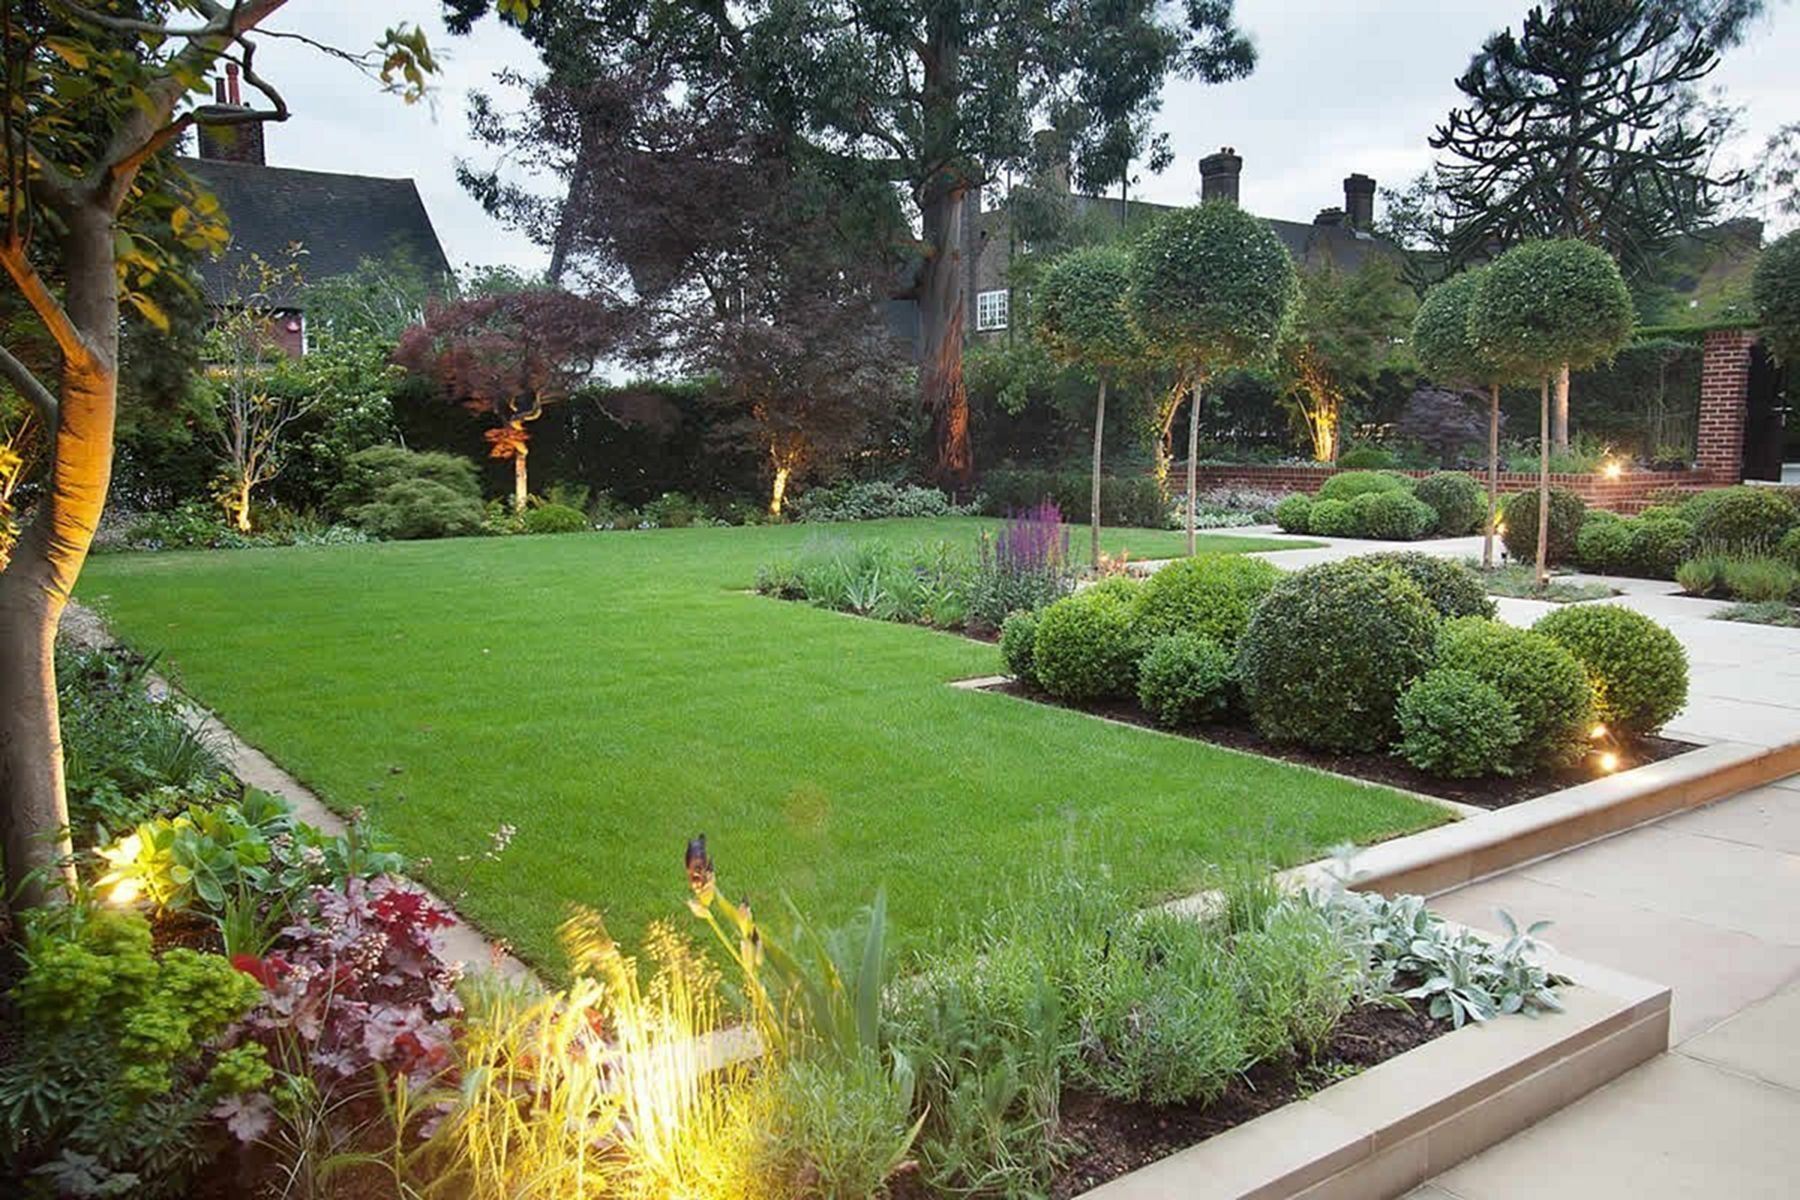 10 Extraordinary Landscape Design Ideas To Enhance Your Beautiful Home Teracee Modern Garden Landscaping Garden Landscape Design Garden Design Layout